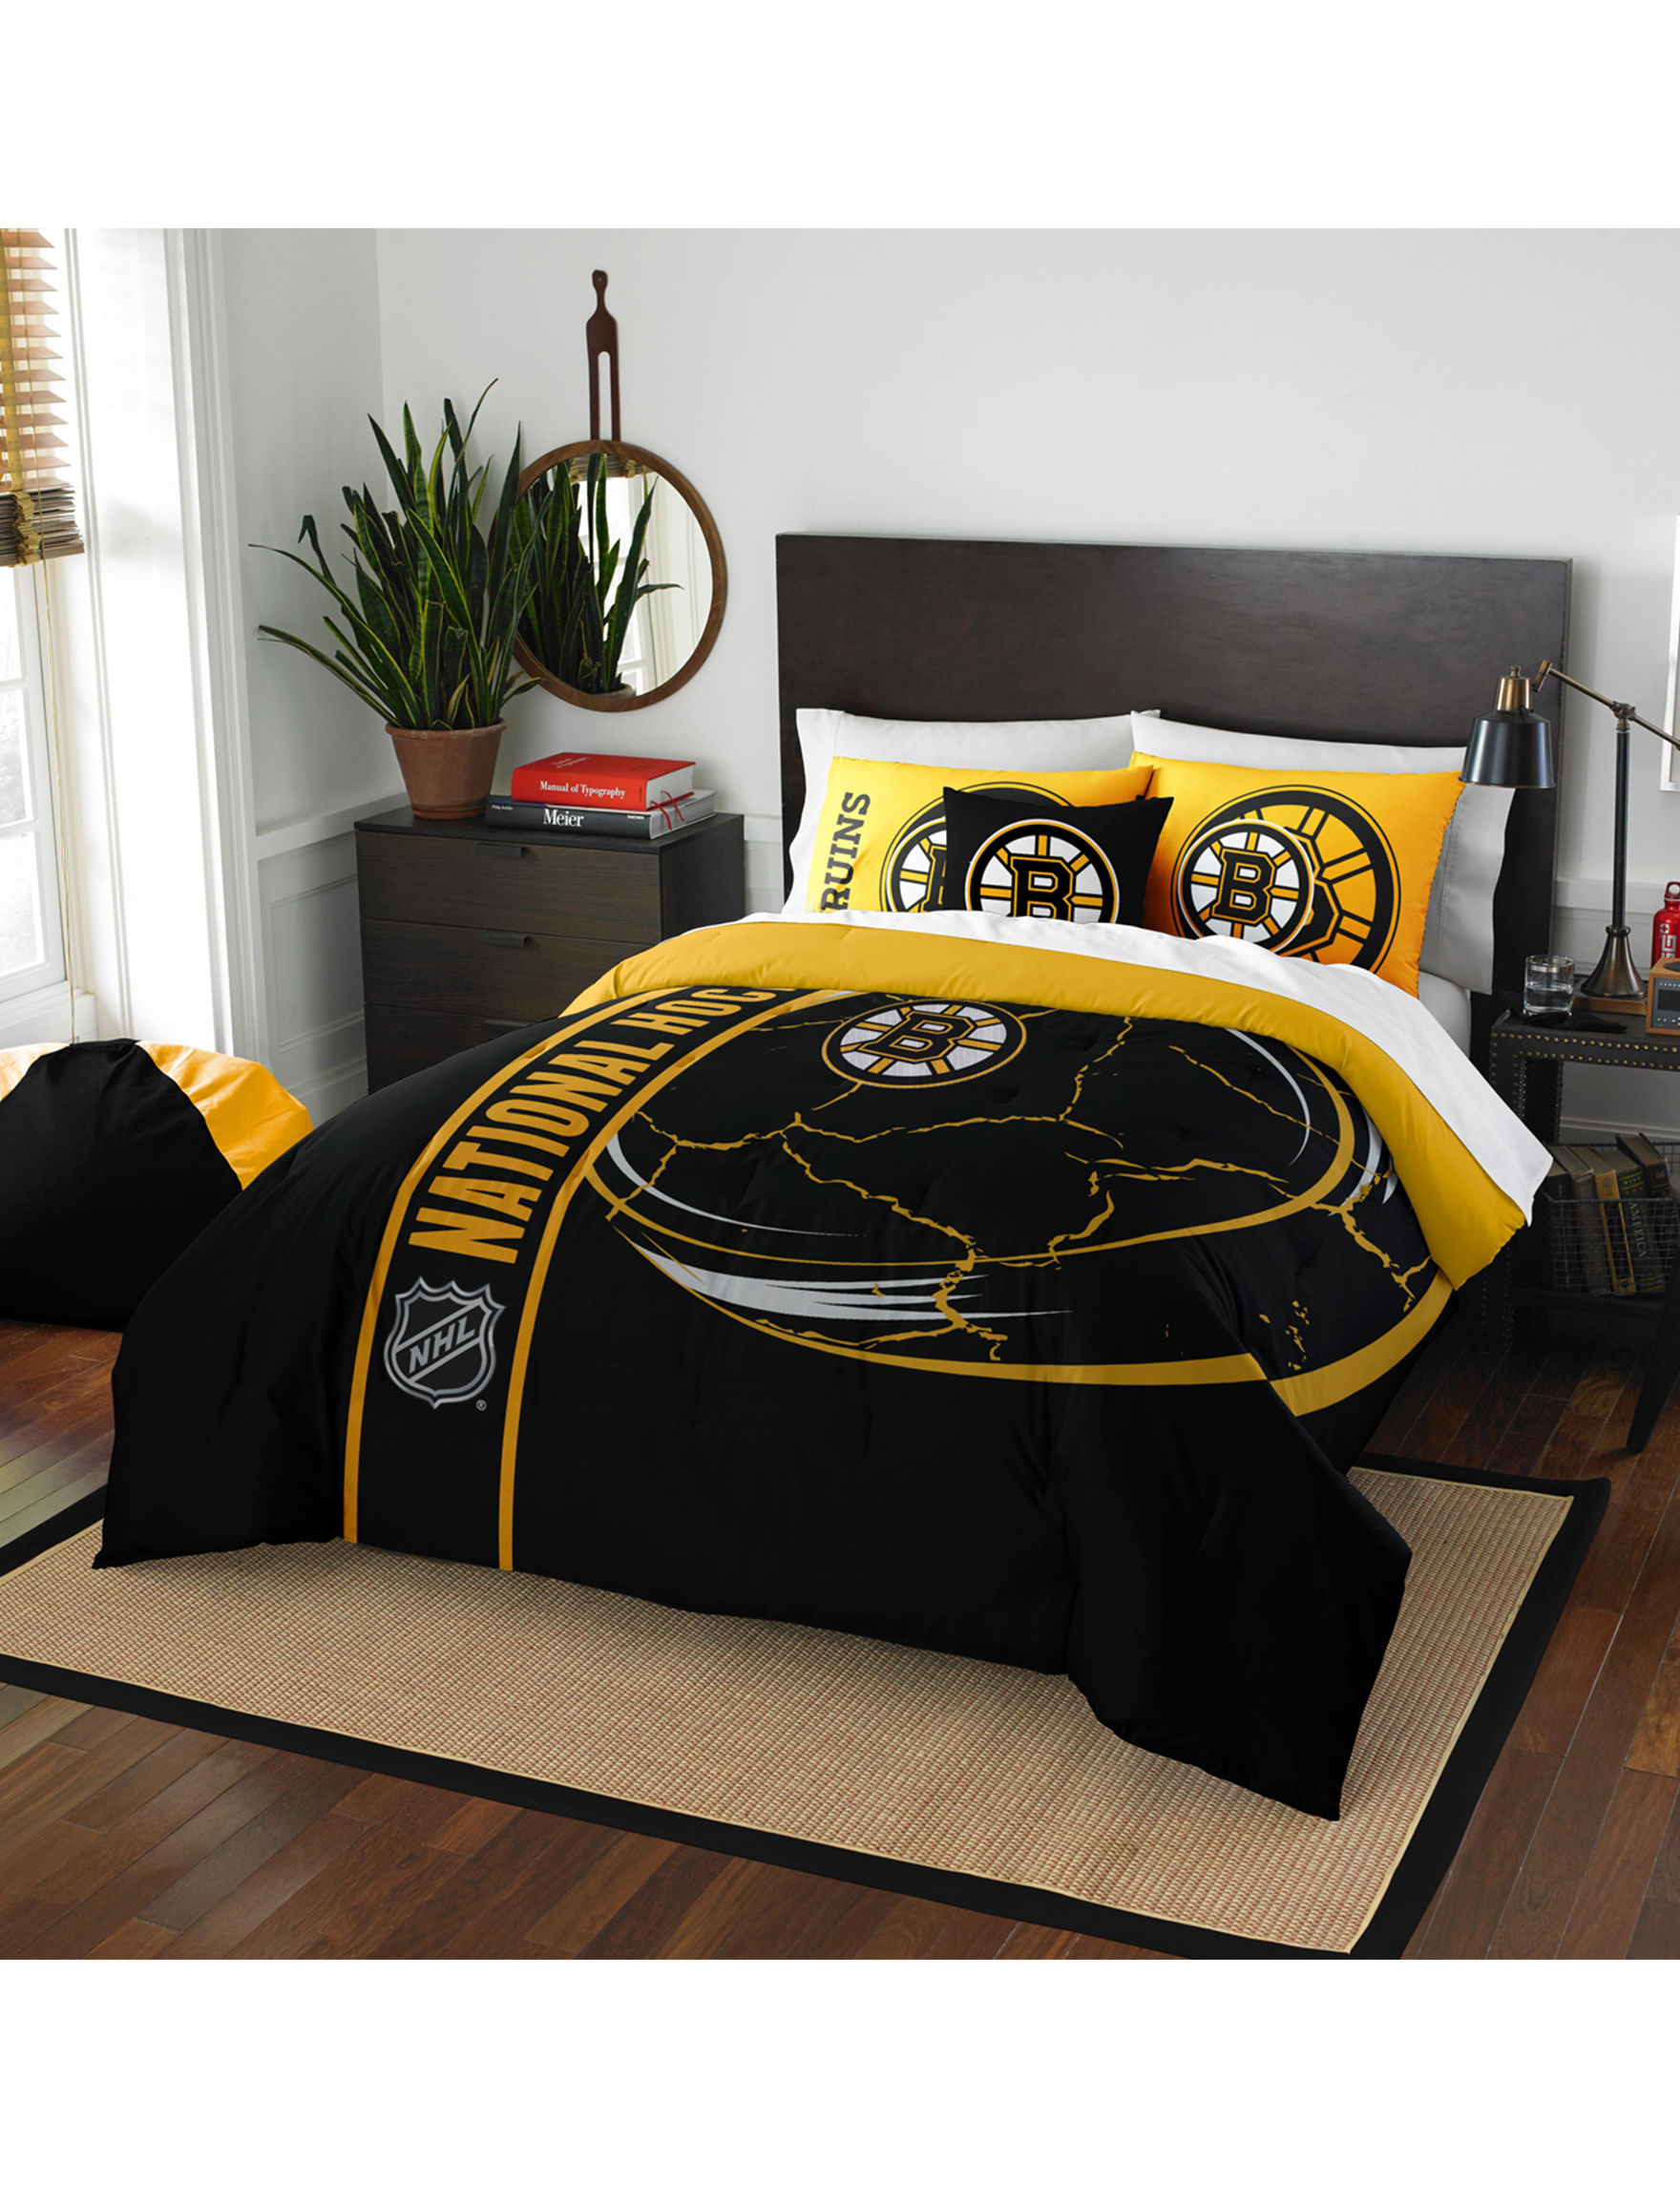 The Northwest Company Black / Yellow Comforters & Comforter Sets